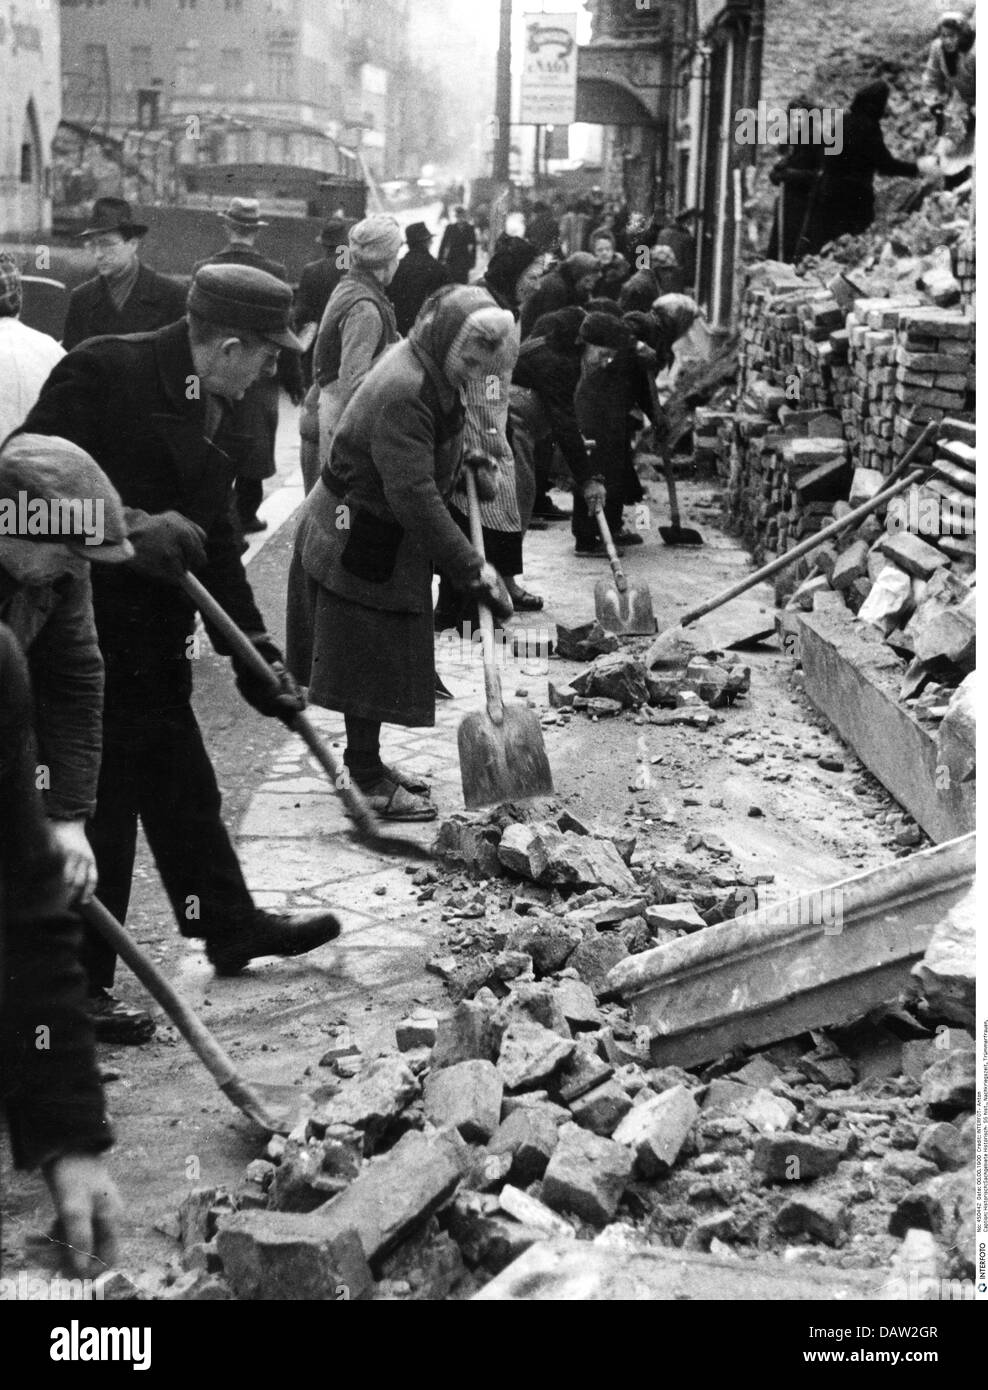 events, Second World War / WWII, aerial warfare, Germany, cleanup after a bombing raid on Berlin, near Cafe Kanzler, - Stock Image